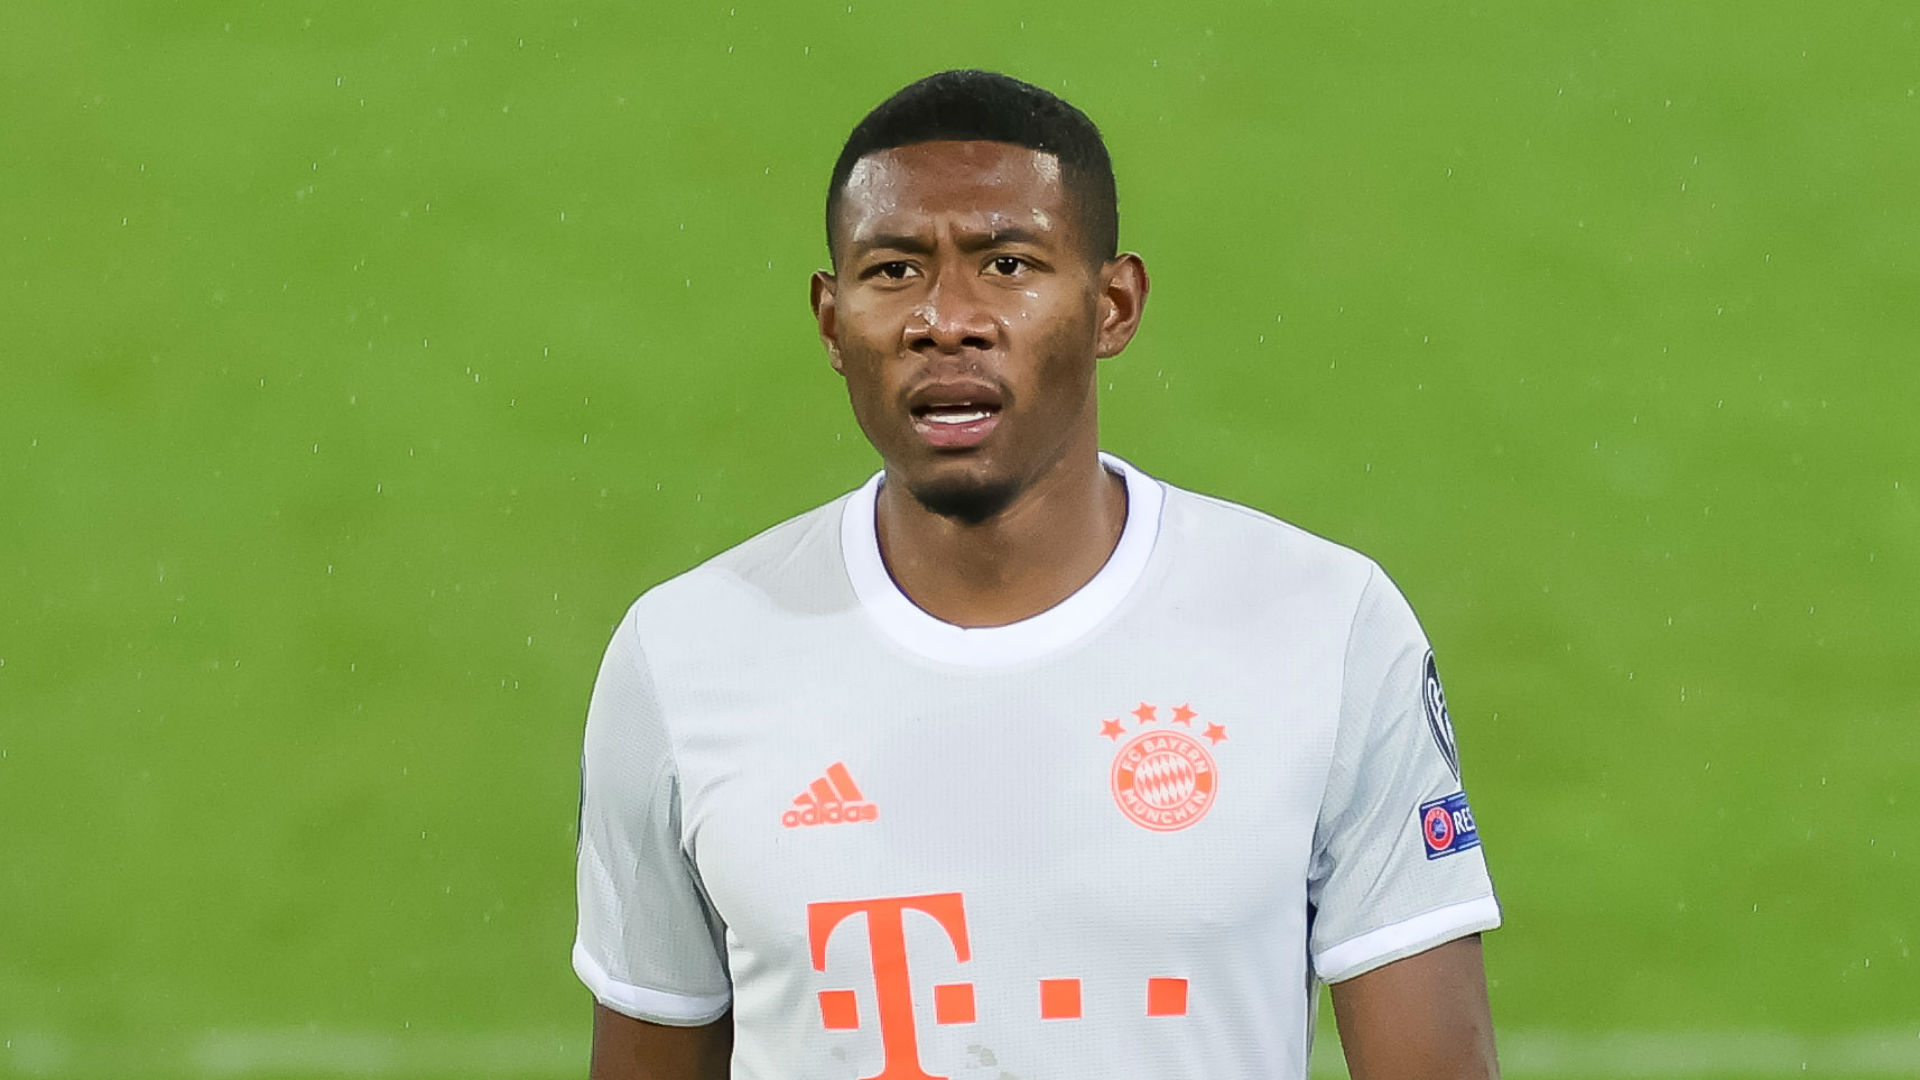 Alaba hasn't signed anything with Real Madrid, insists Bayern Munich star's father